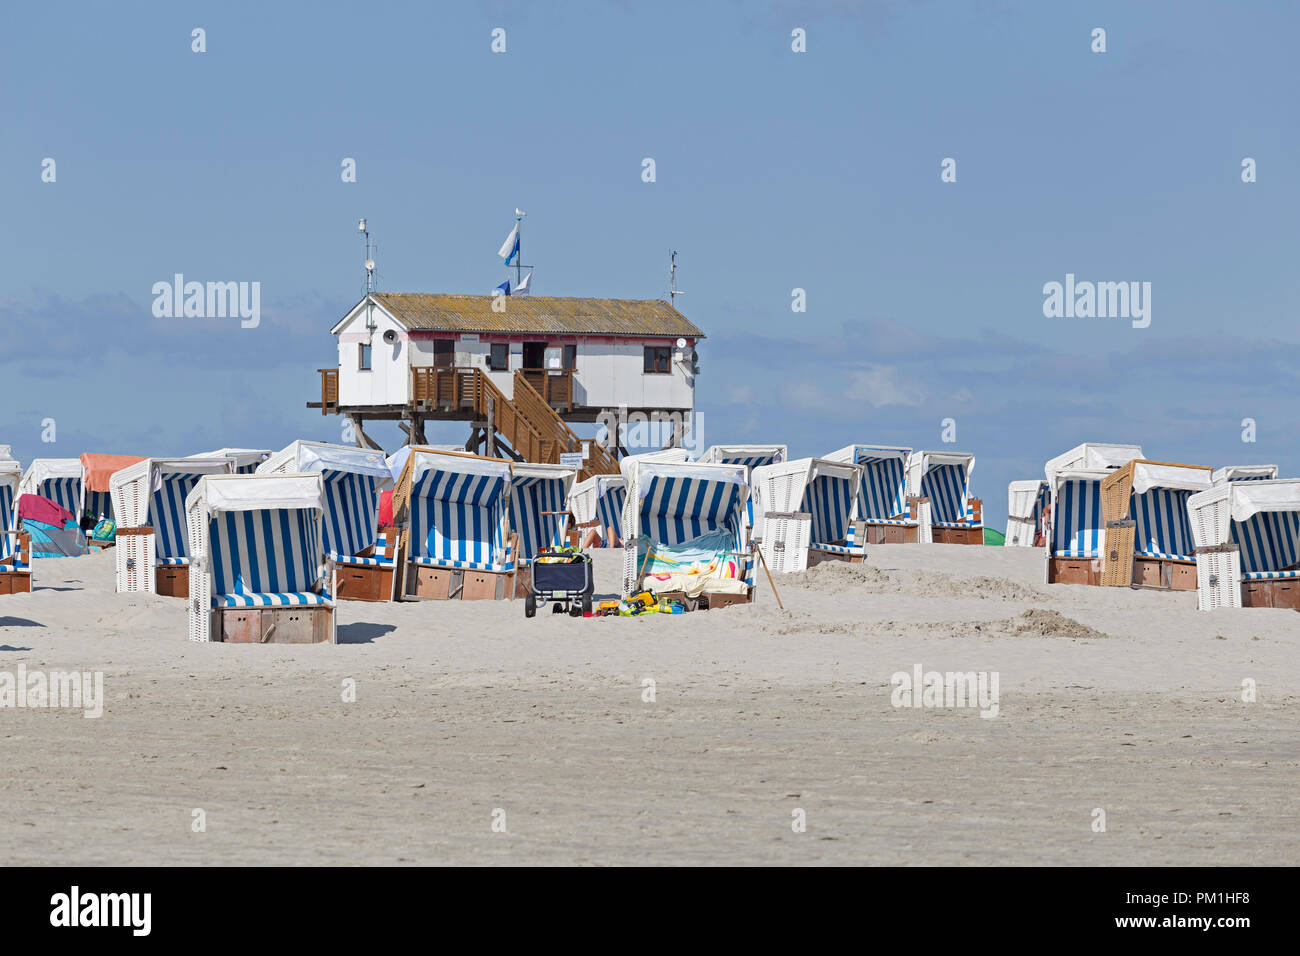 stilt house and beach chairs, St. Peter-Ording, Schleswig-Holstein, Germany - Stock Image